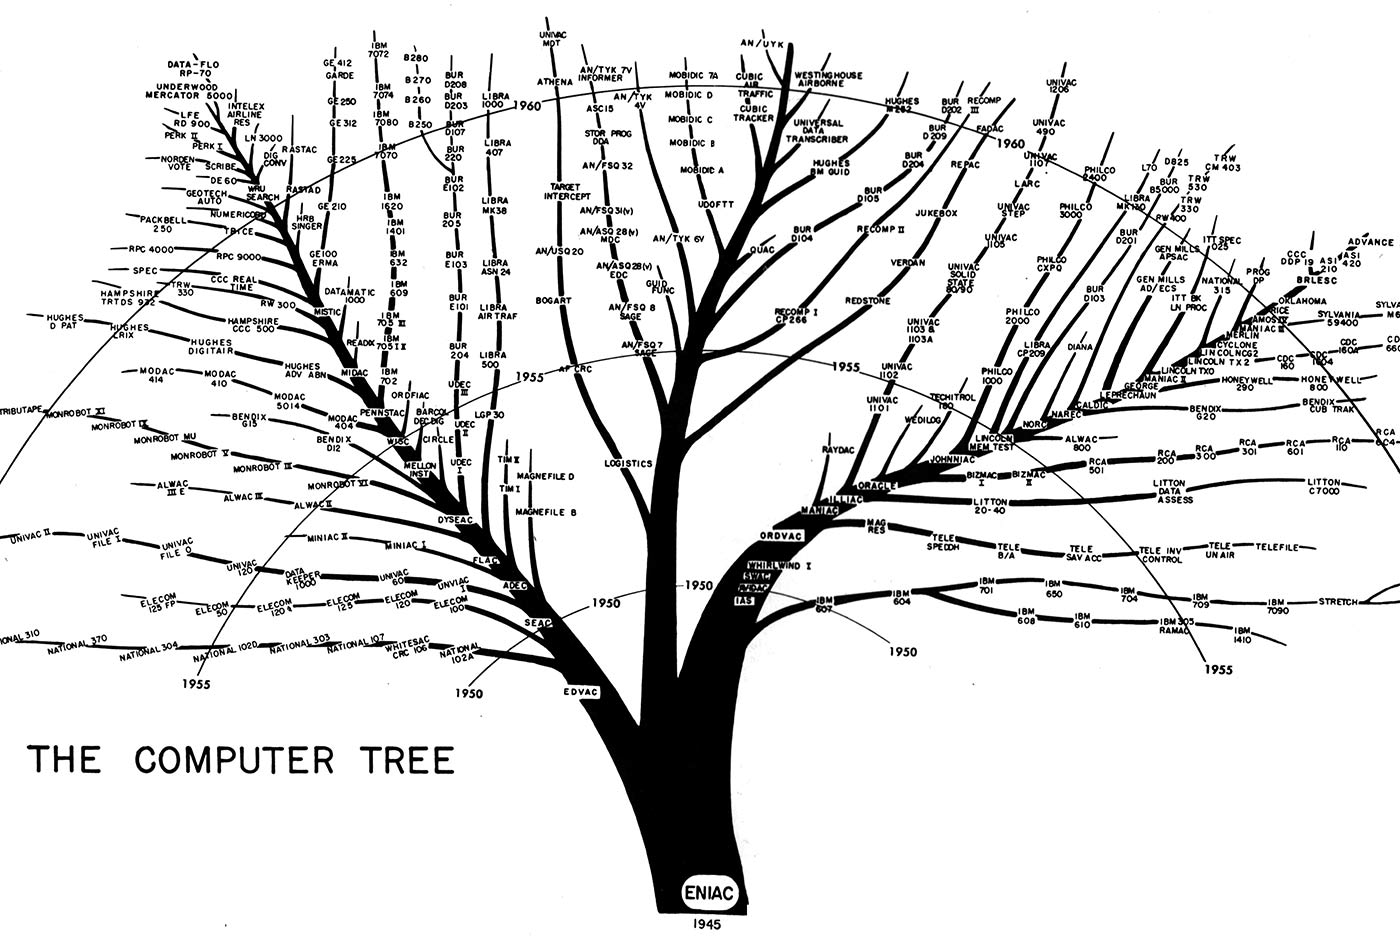 Tree showing the evolution of computers used by the U.S. Army from the ENIAC.